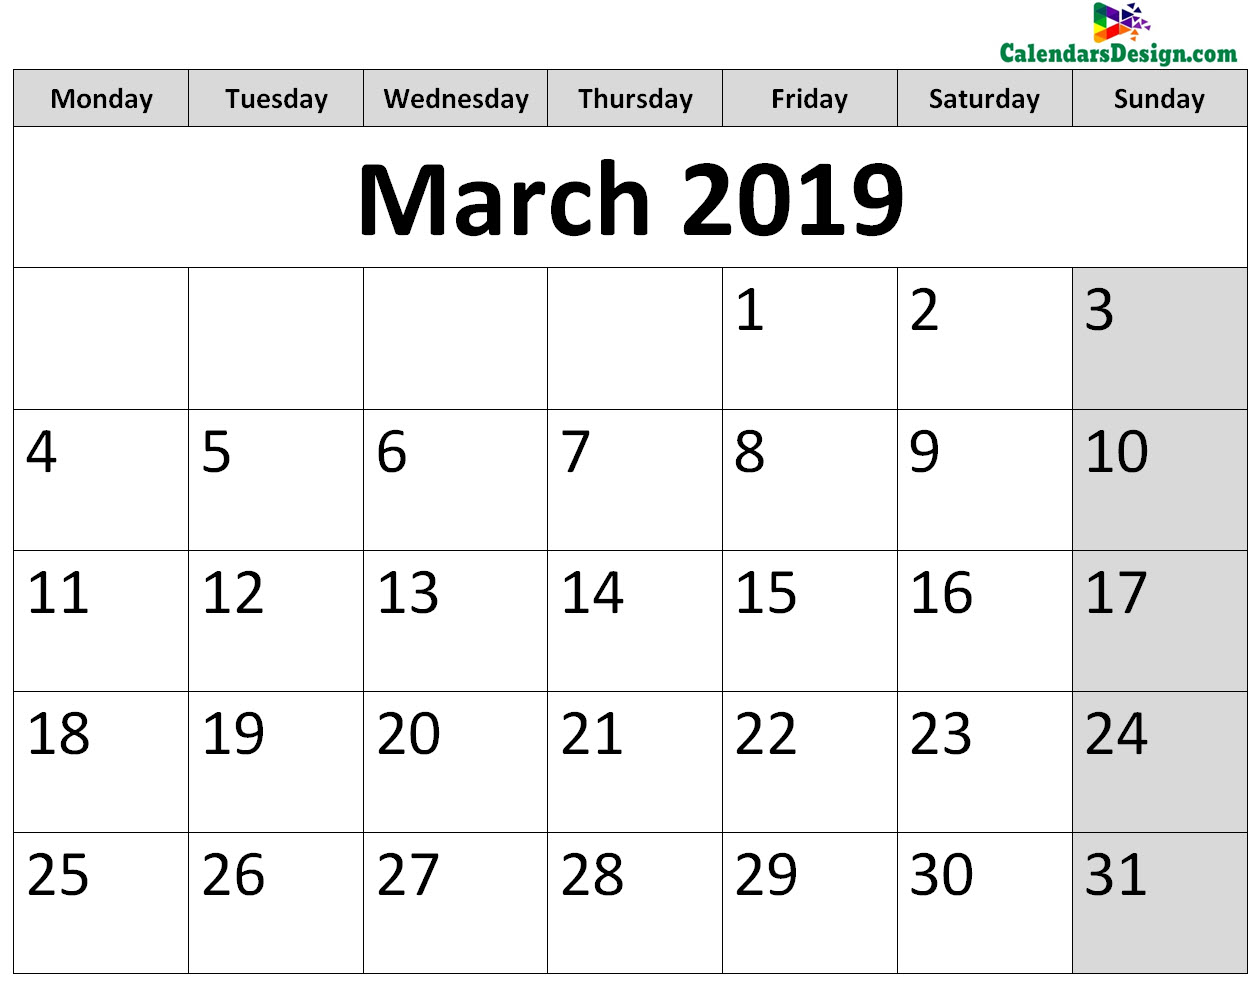 Printable Calendar for March 2019 Page